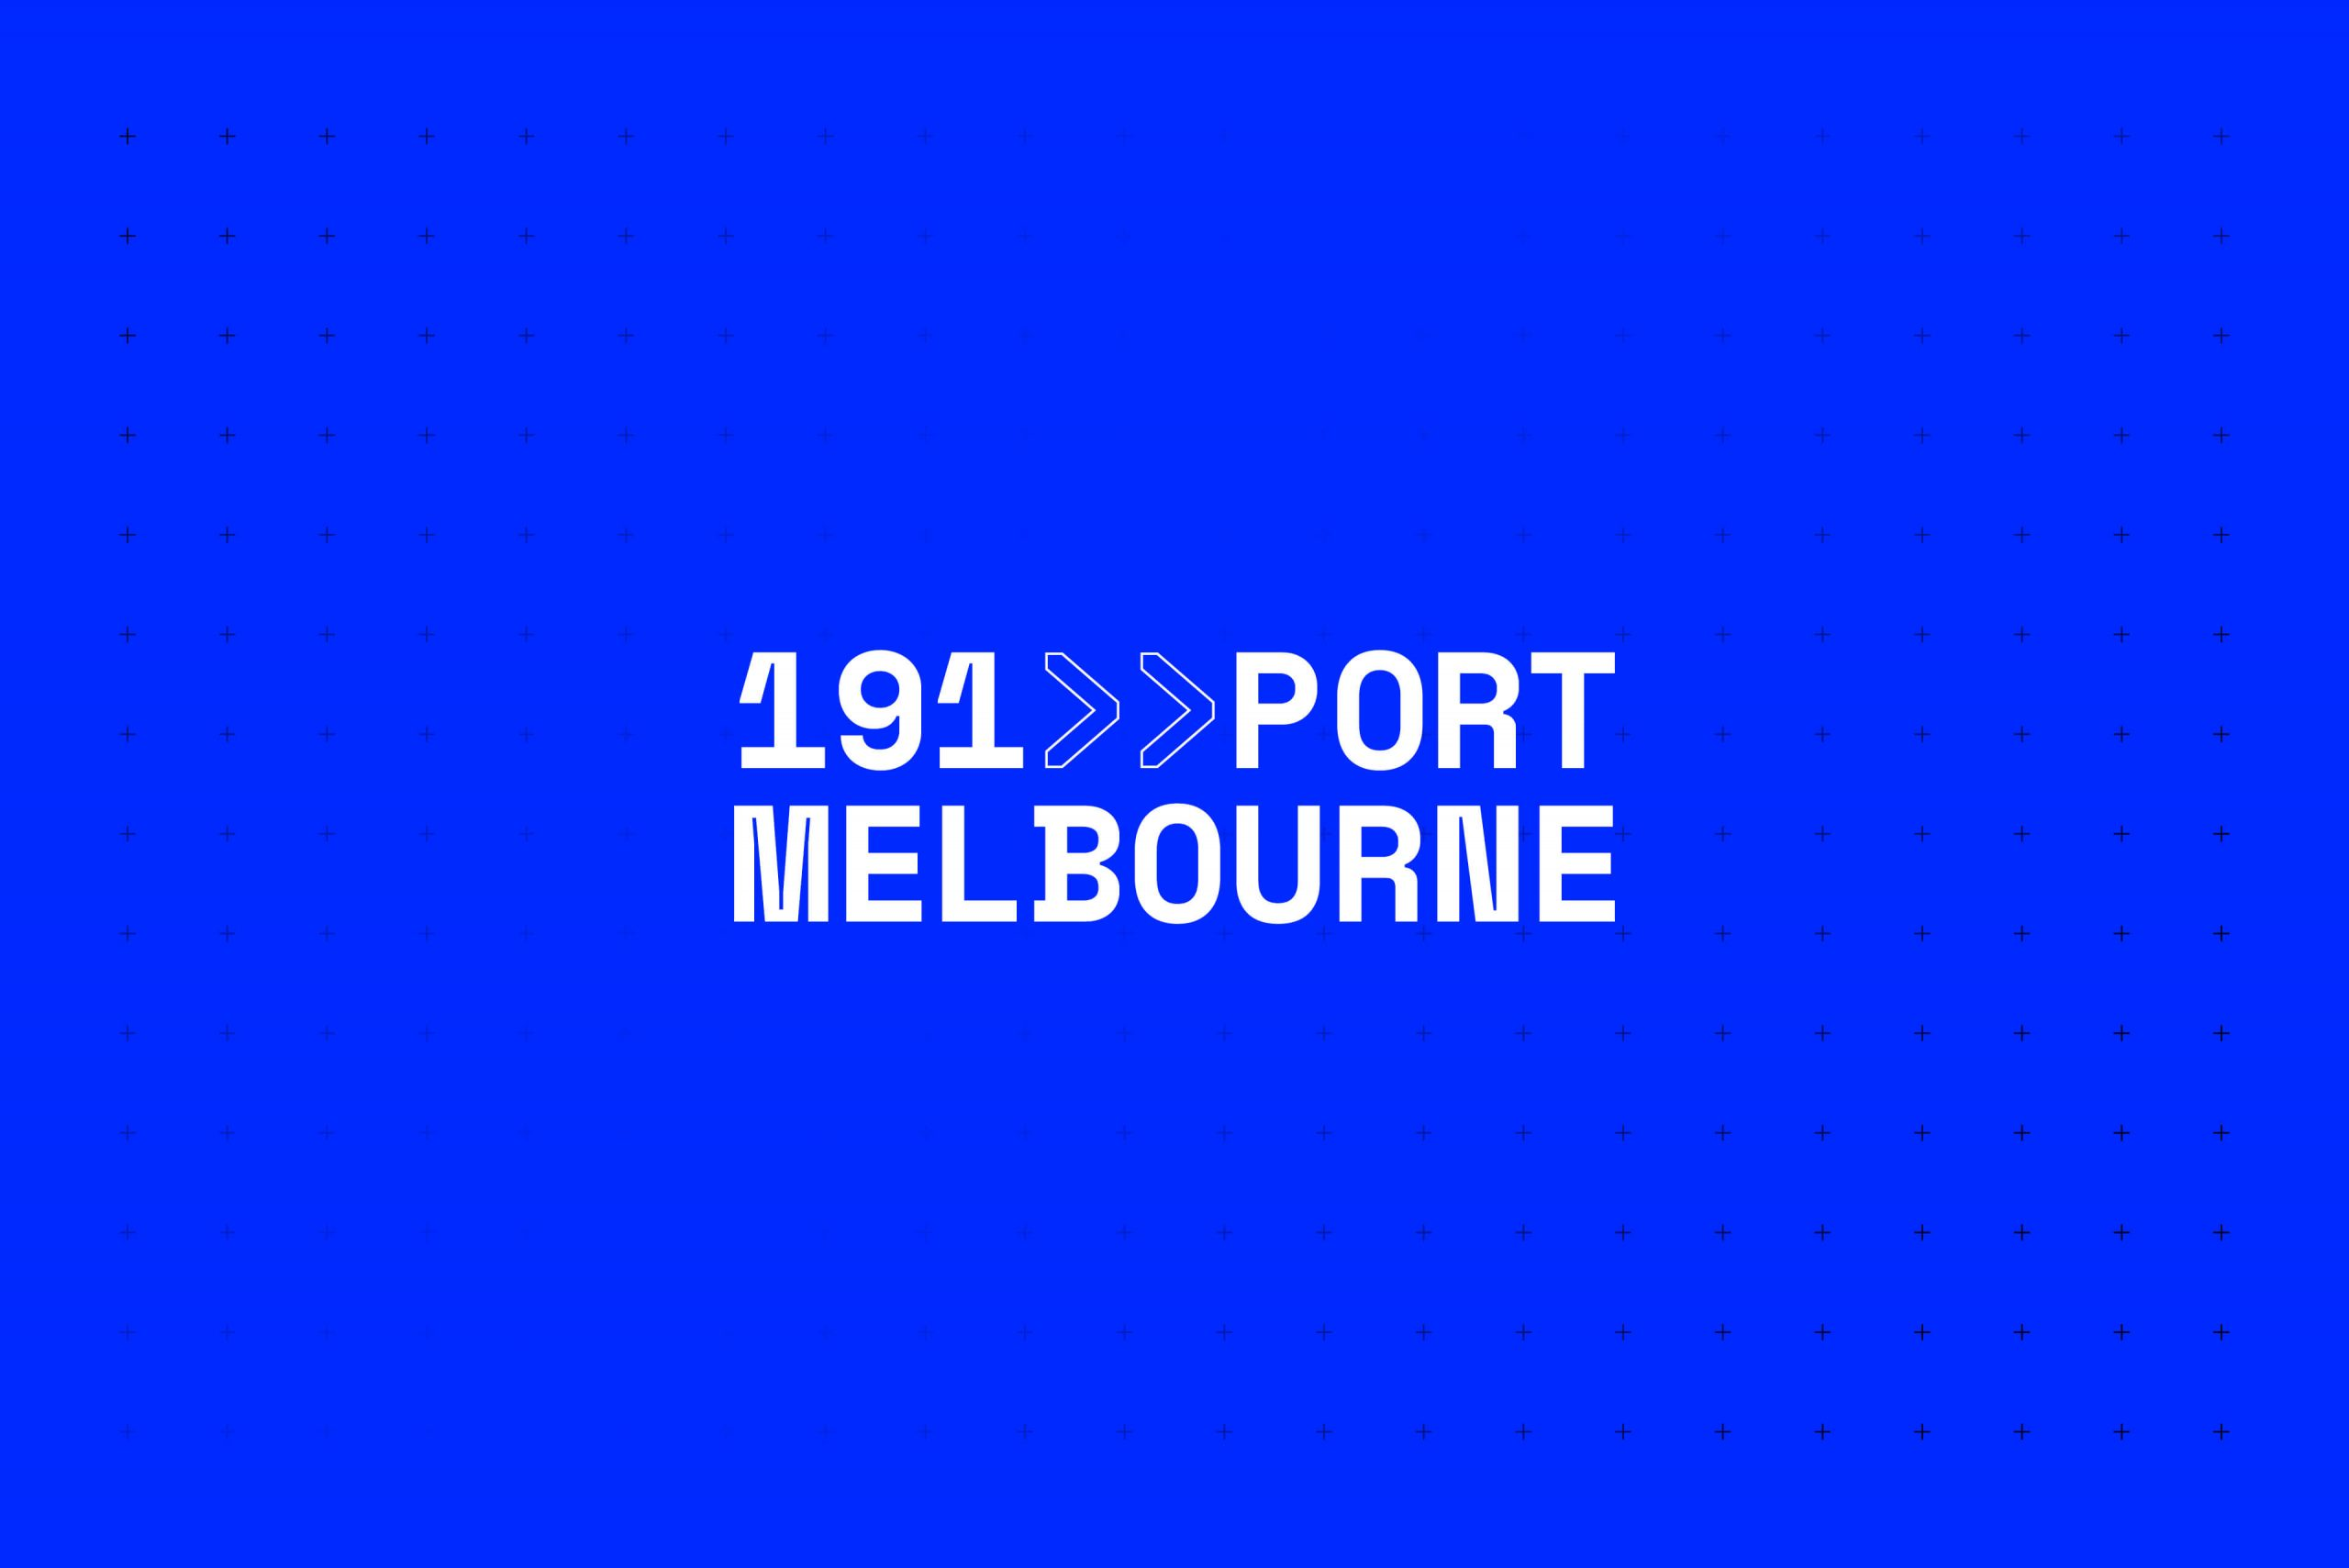 191 Port Melbourne - Property Brand Identity - Logotype & Colour Palette